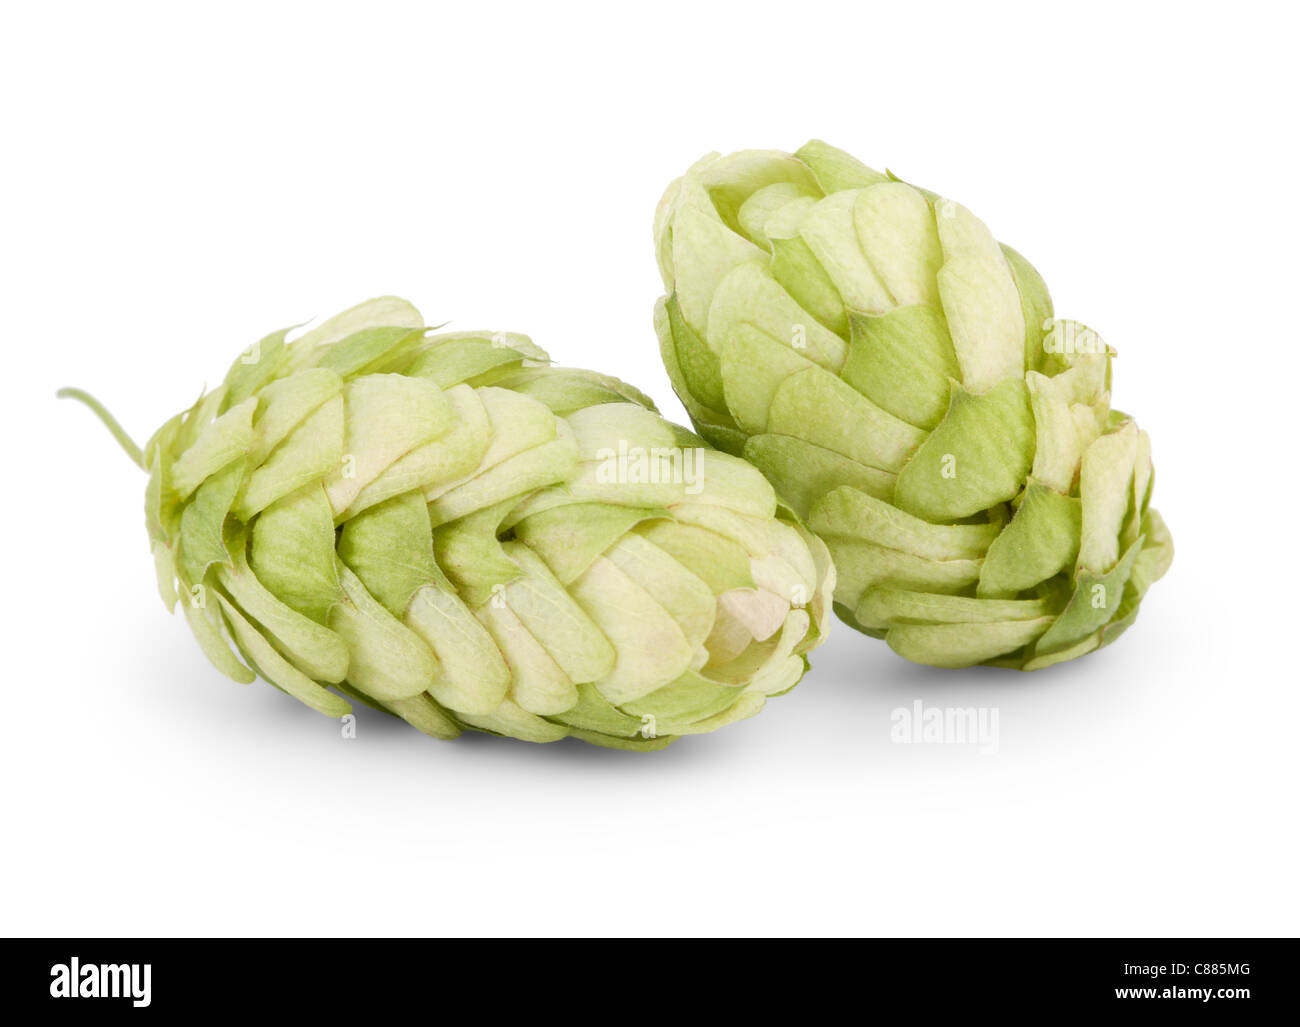 hops isolated on a white background - Stock Image